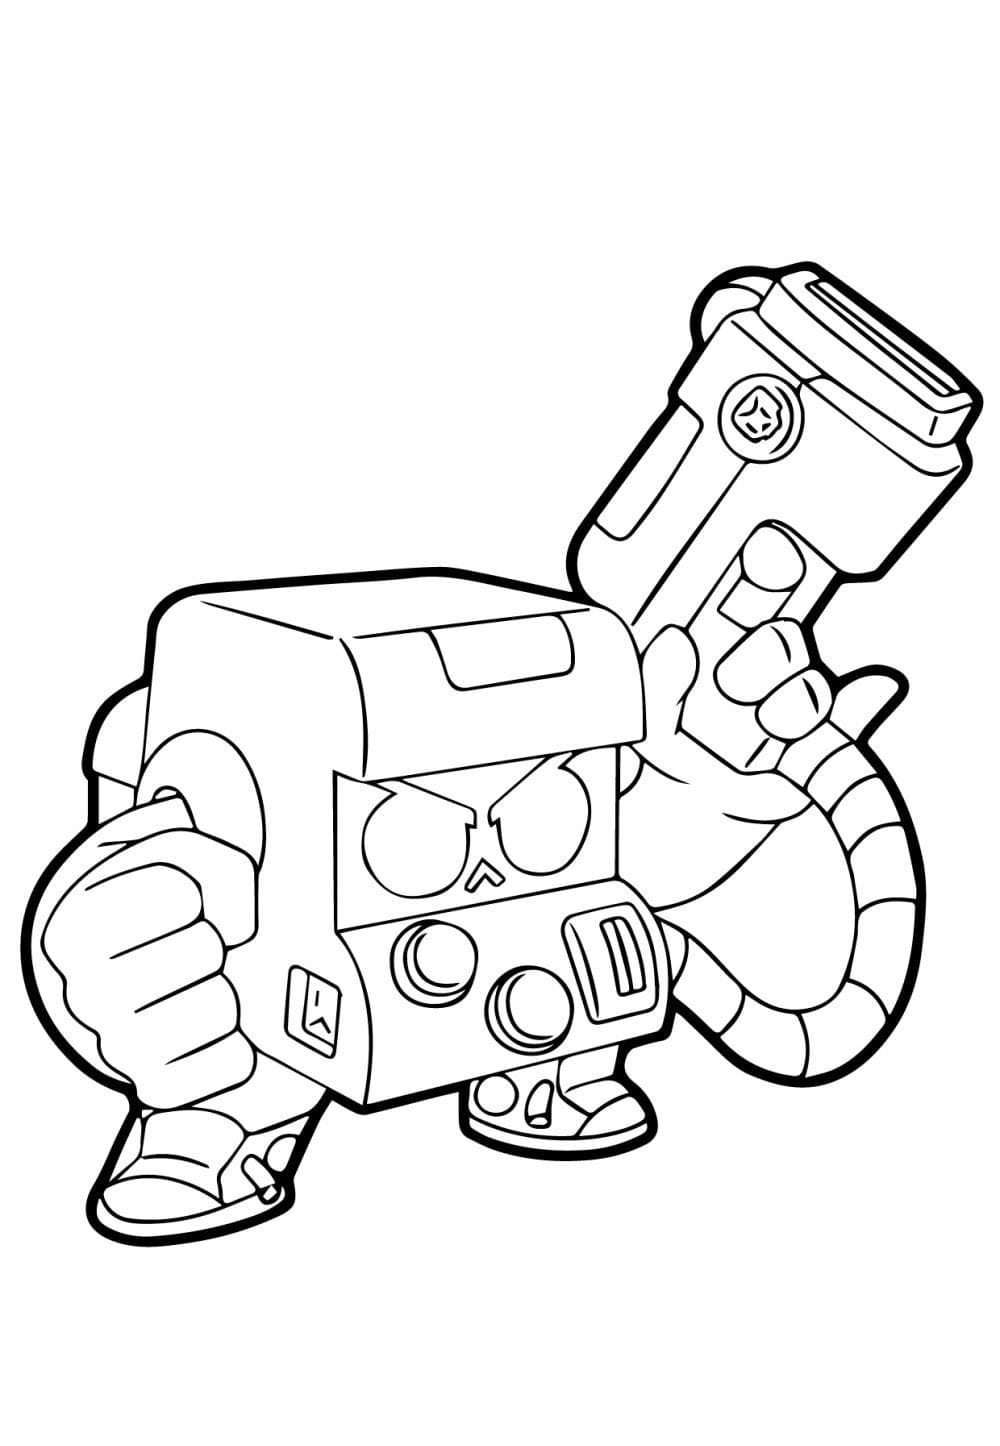 Brawl Stars Coloring pages for print. Free Printable New Collection